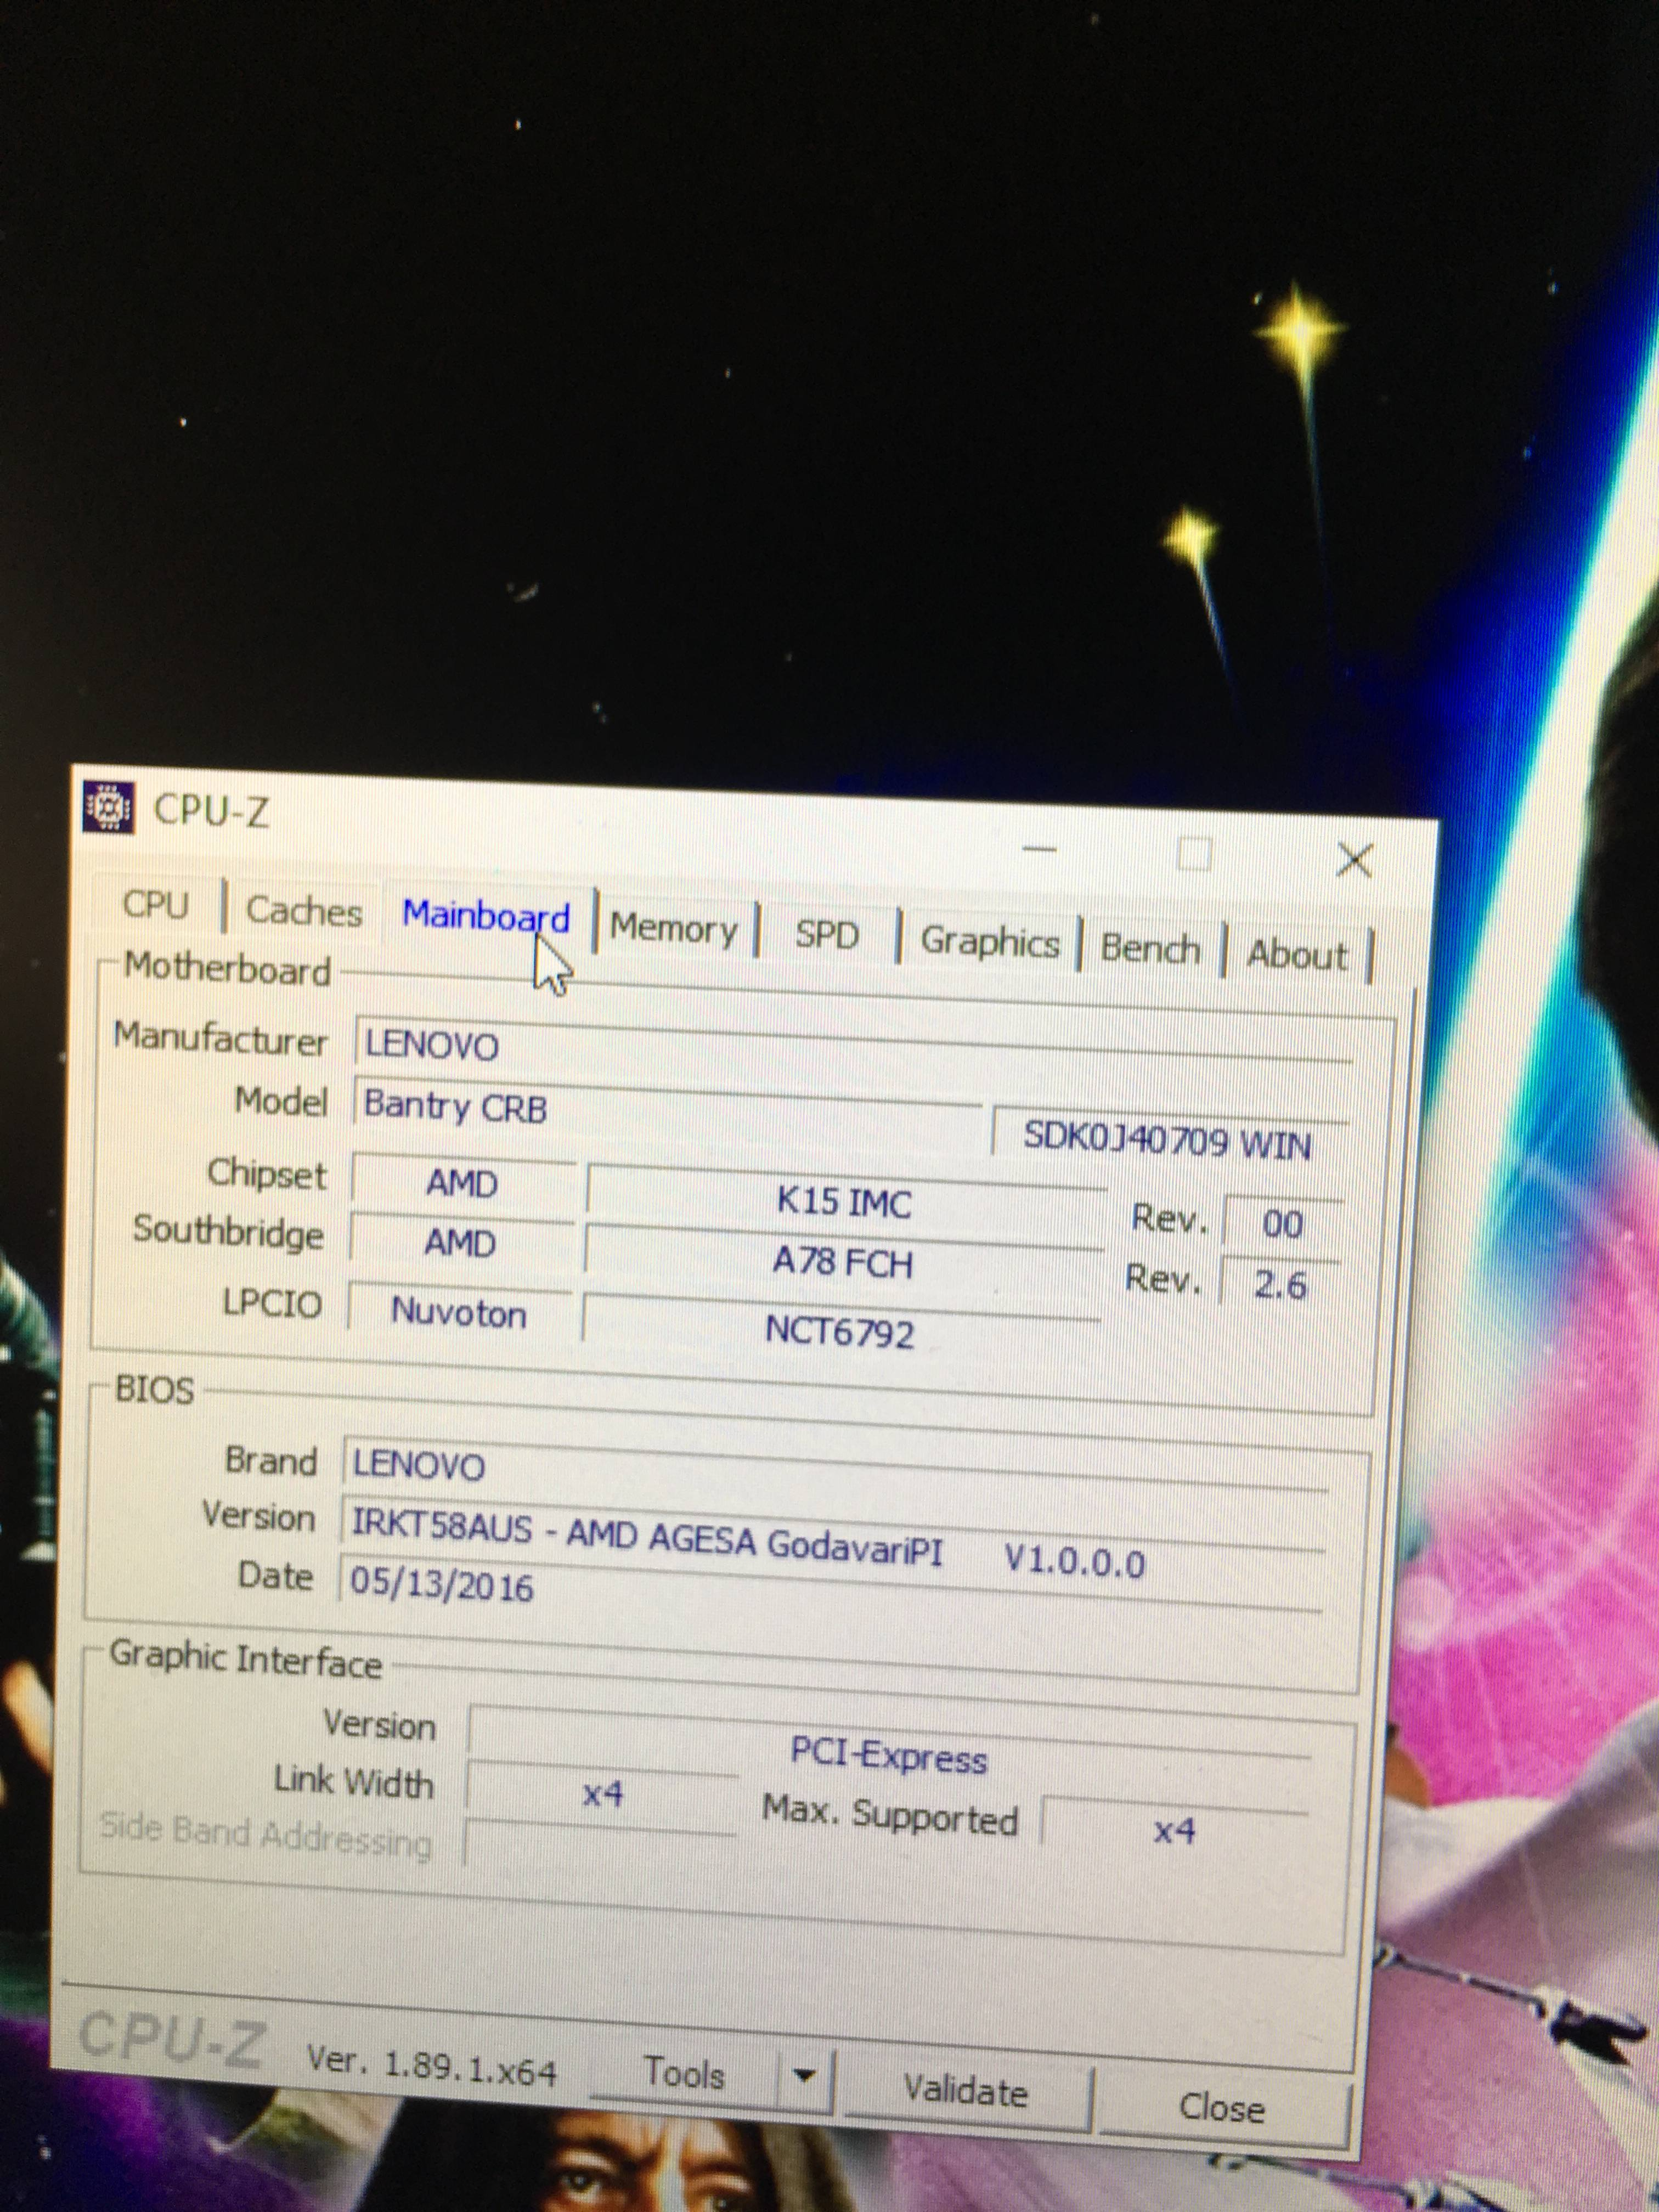 Will a AMD Ryzen 3 work with a lenovo bantry crb motherboard